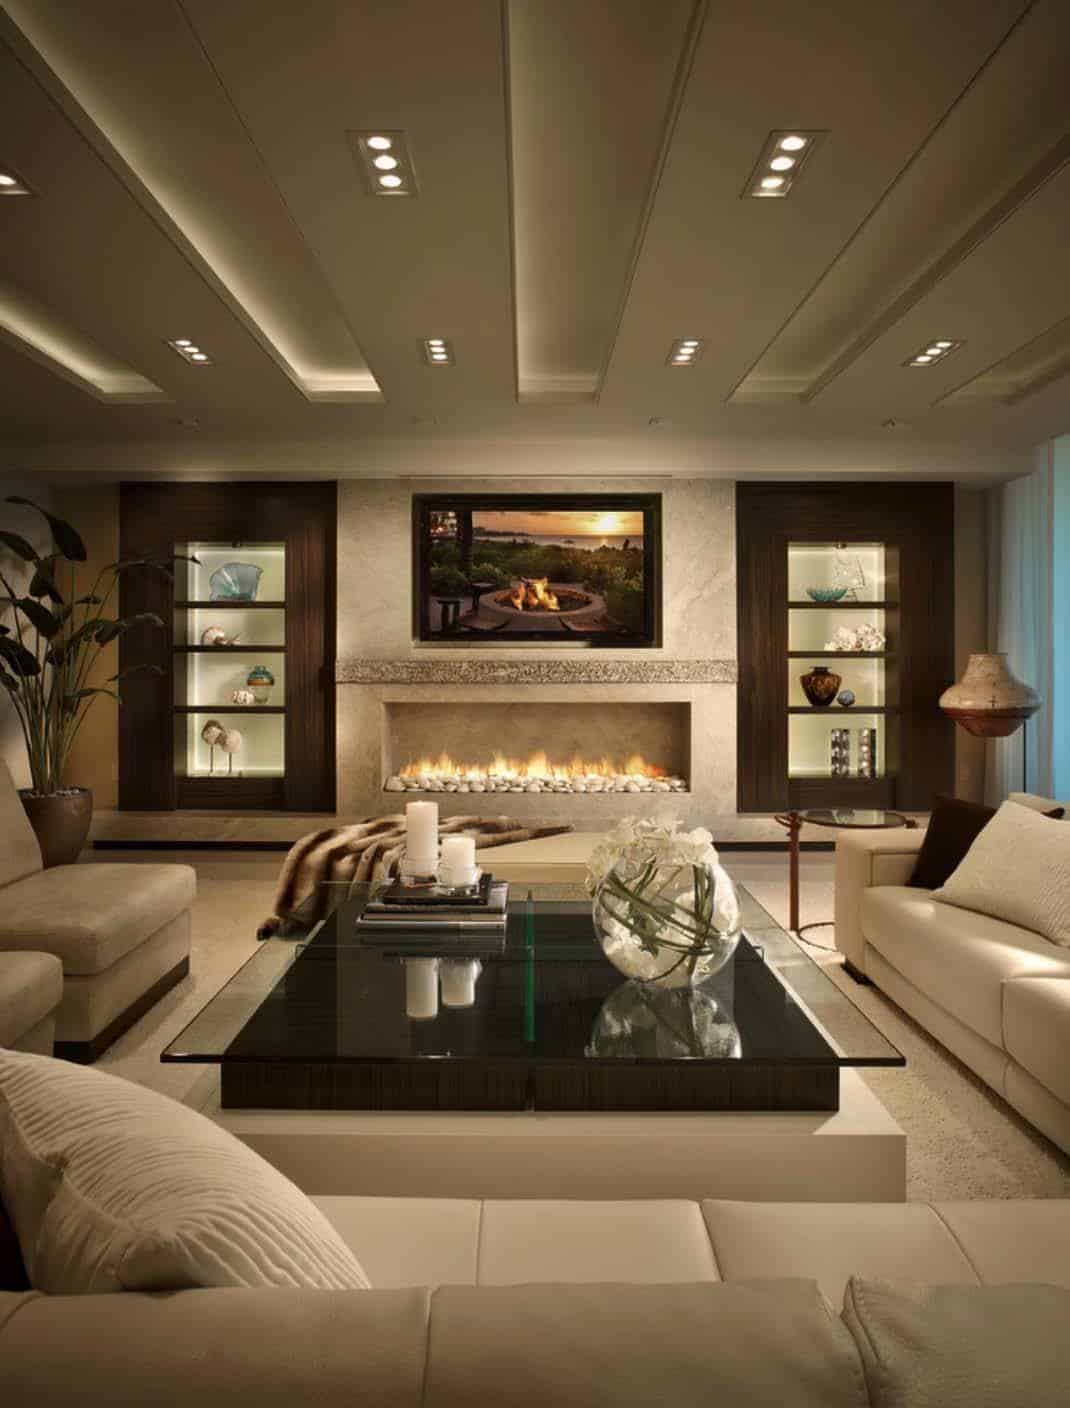 Contemporary Residence-Interiors by Steven G-05-1 Kindesign